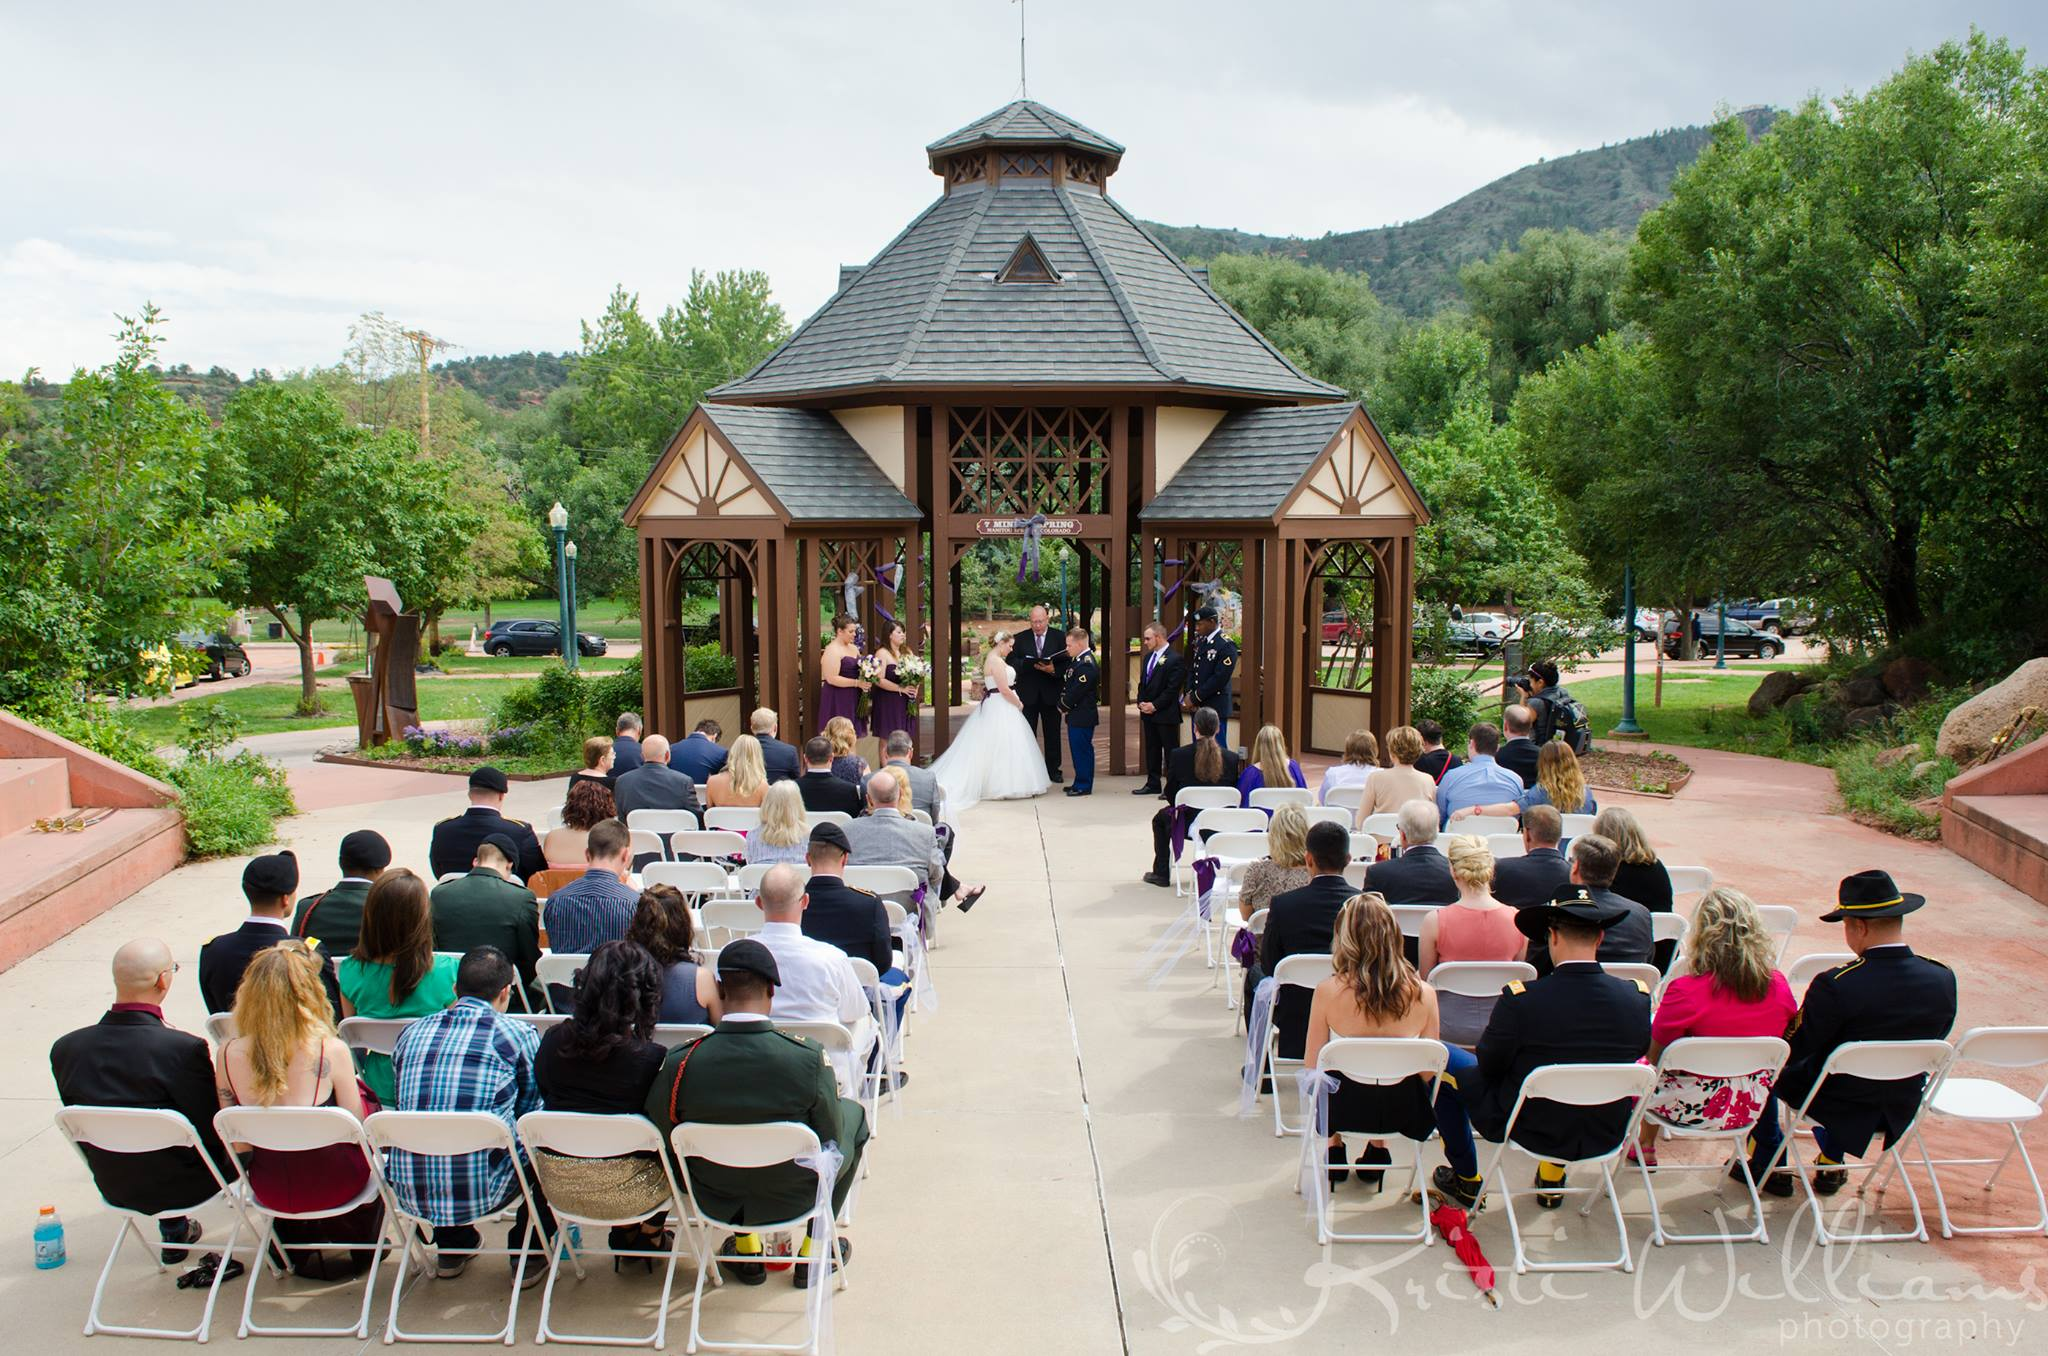 Manitou Springs Gazebo